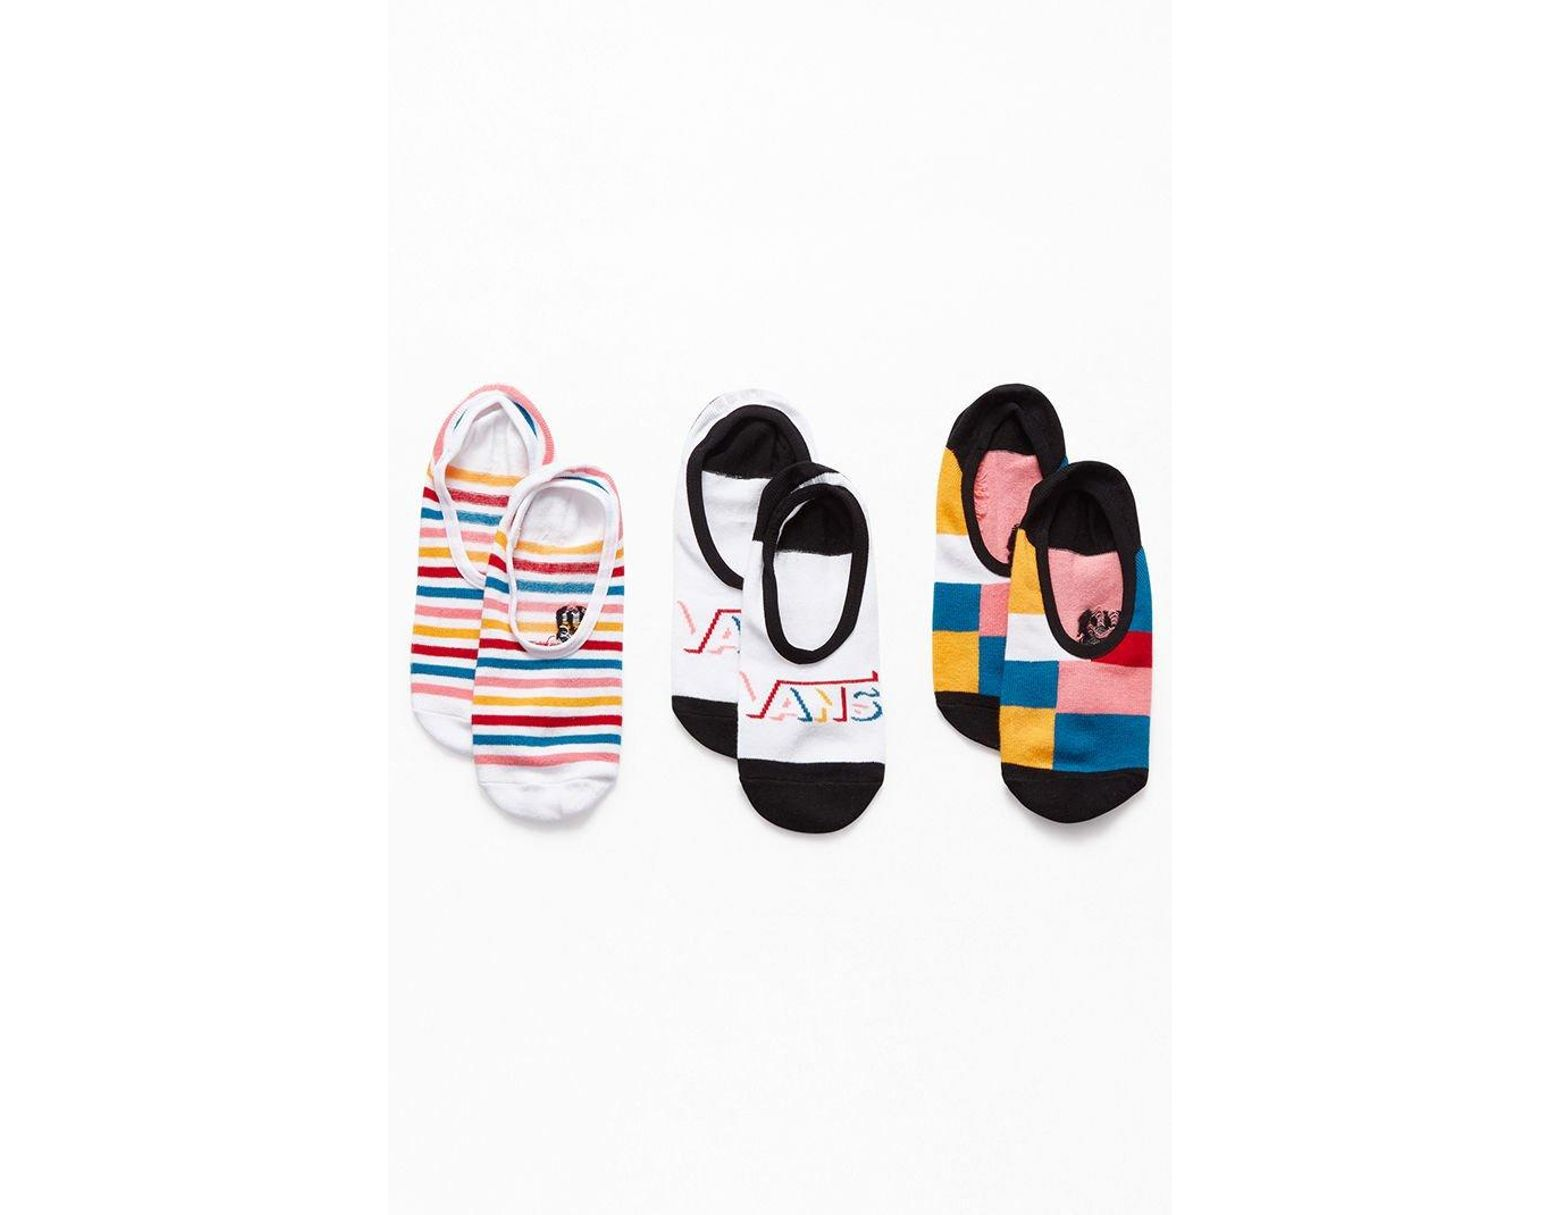 eb42f2fa6a Vans Patched Up Canoodle 3-pack Socks - Lyst